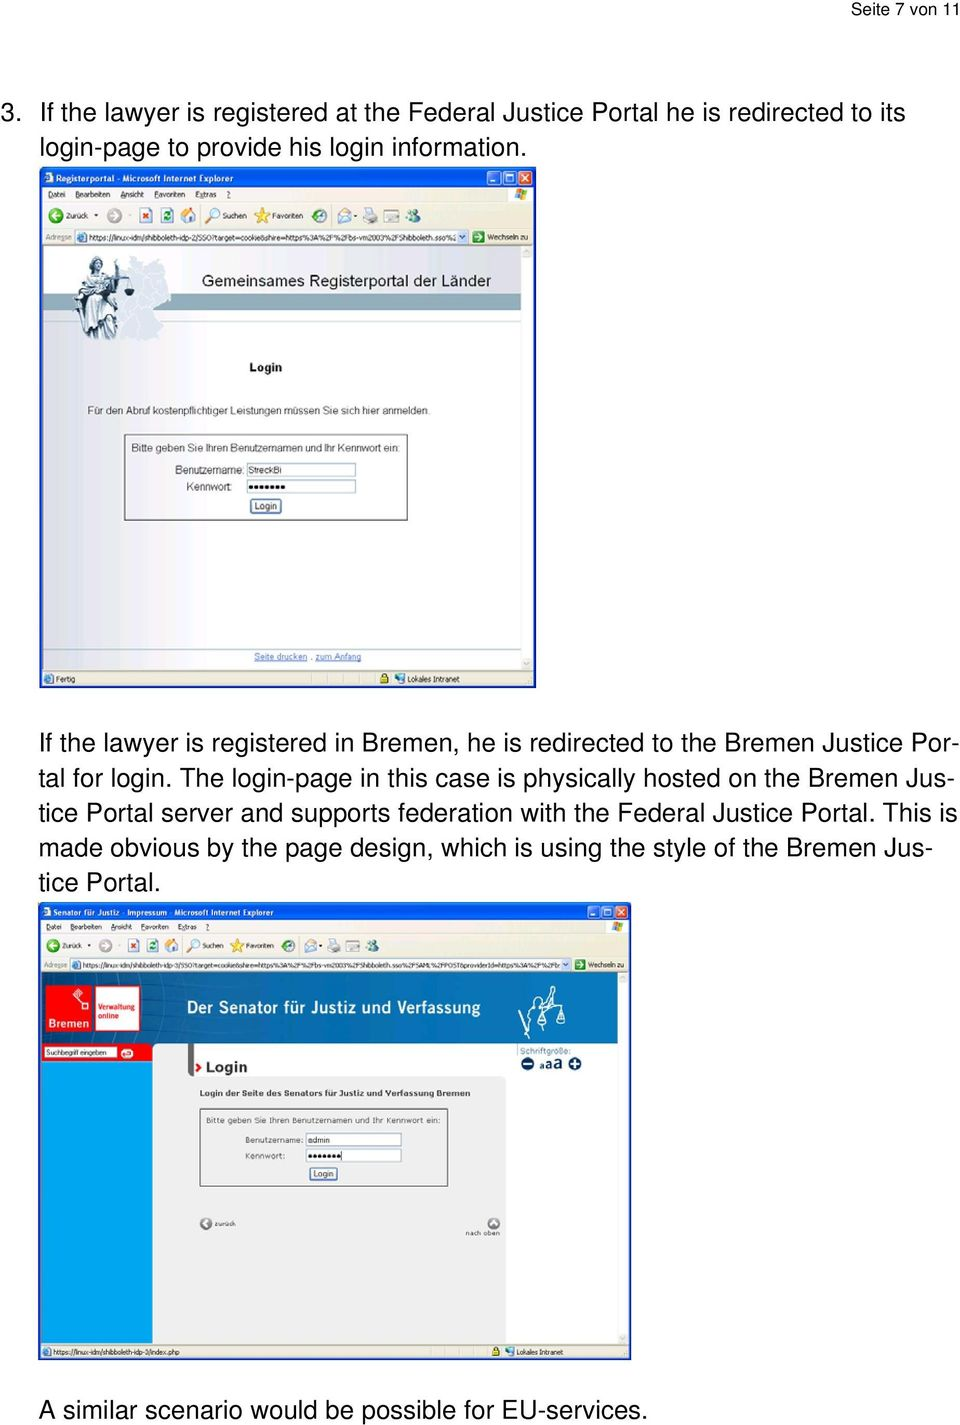 If the lawyer is registered in Bremen, he is redirected to the Bremen Justice Portal for login.